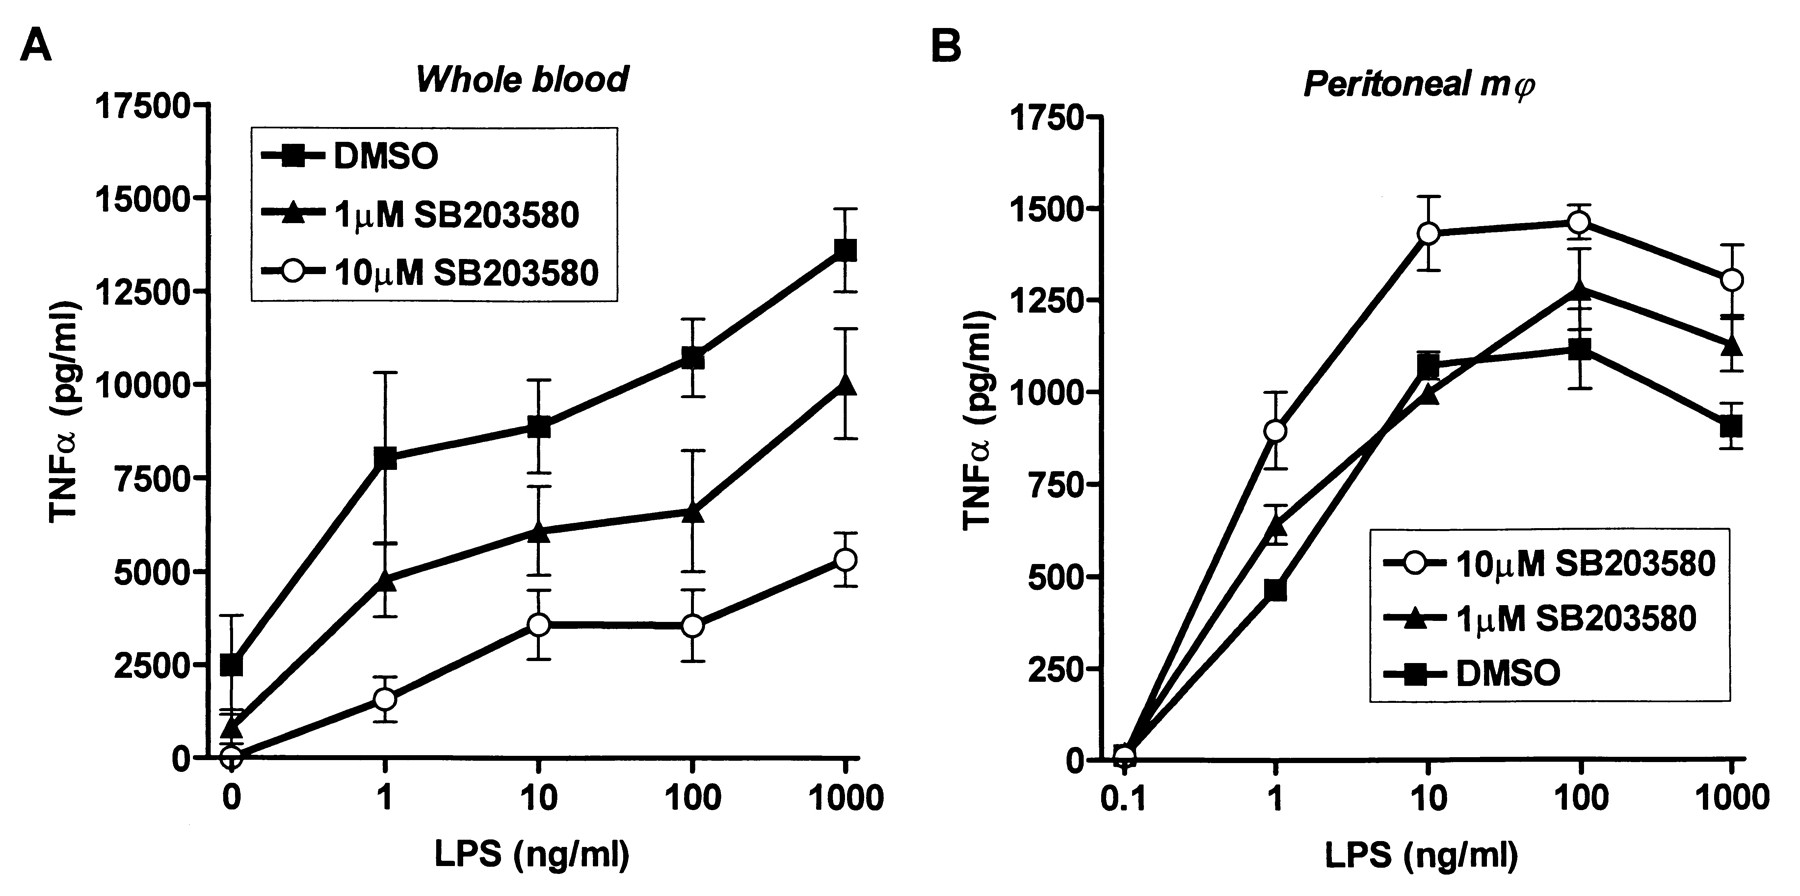 p38 Mitogen-Activated Protein Kinase Inhibition Increases